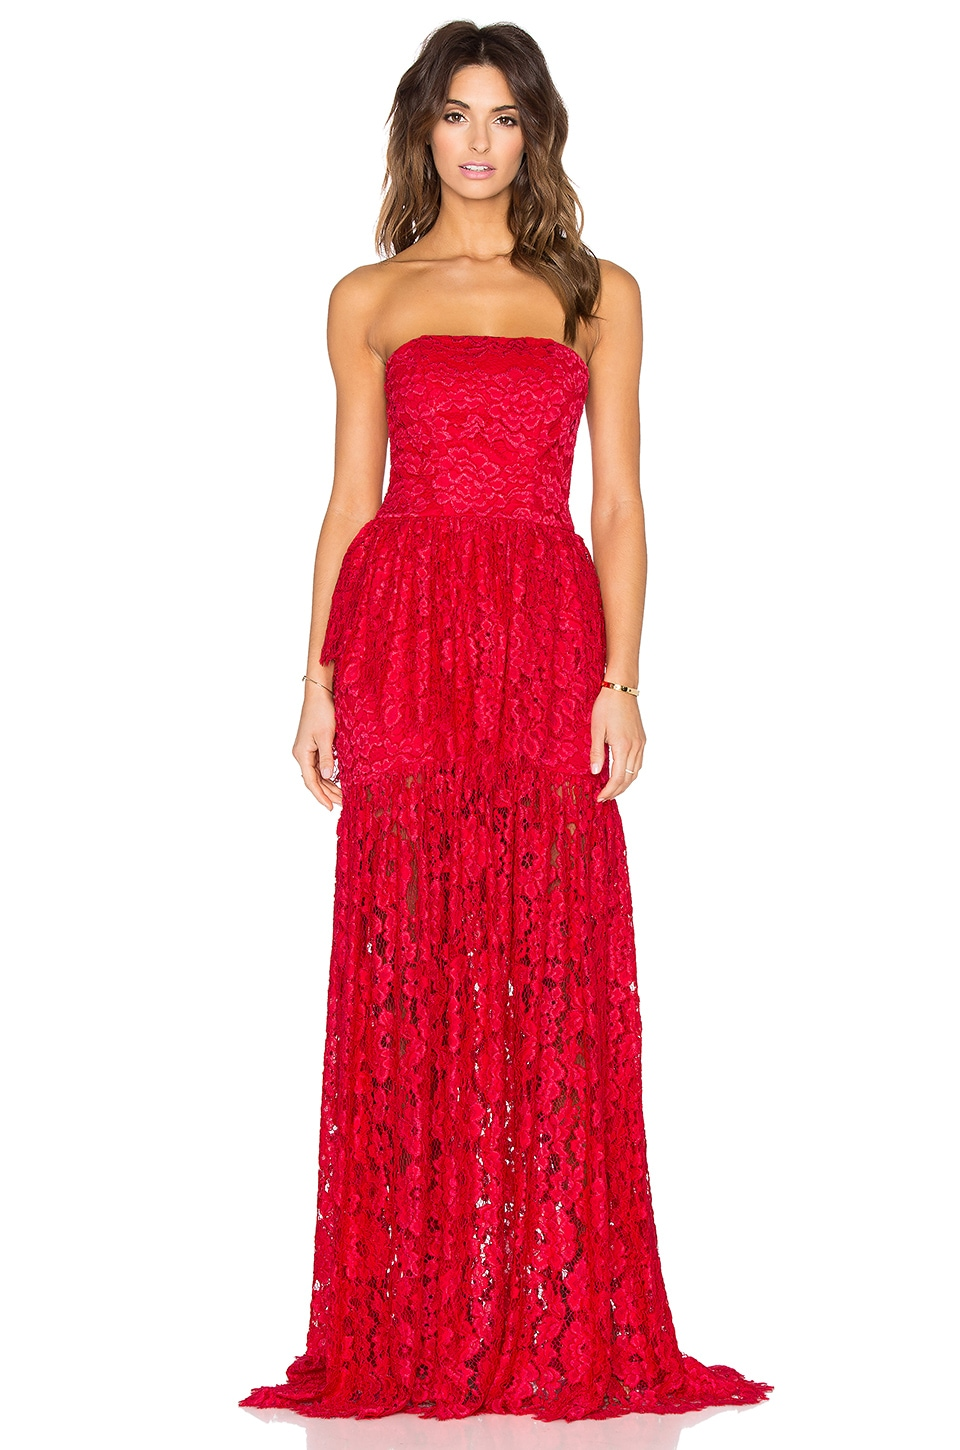 Alexis Sylvia Maxi Dress in Red Lace | REVOLVE